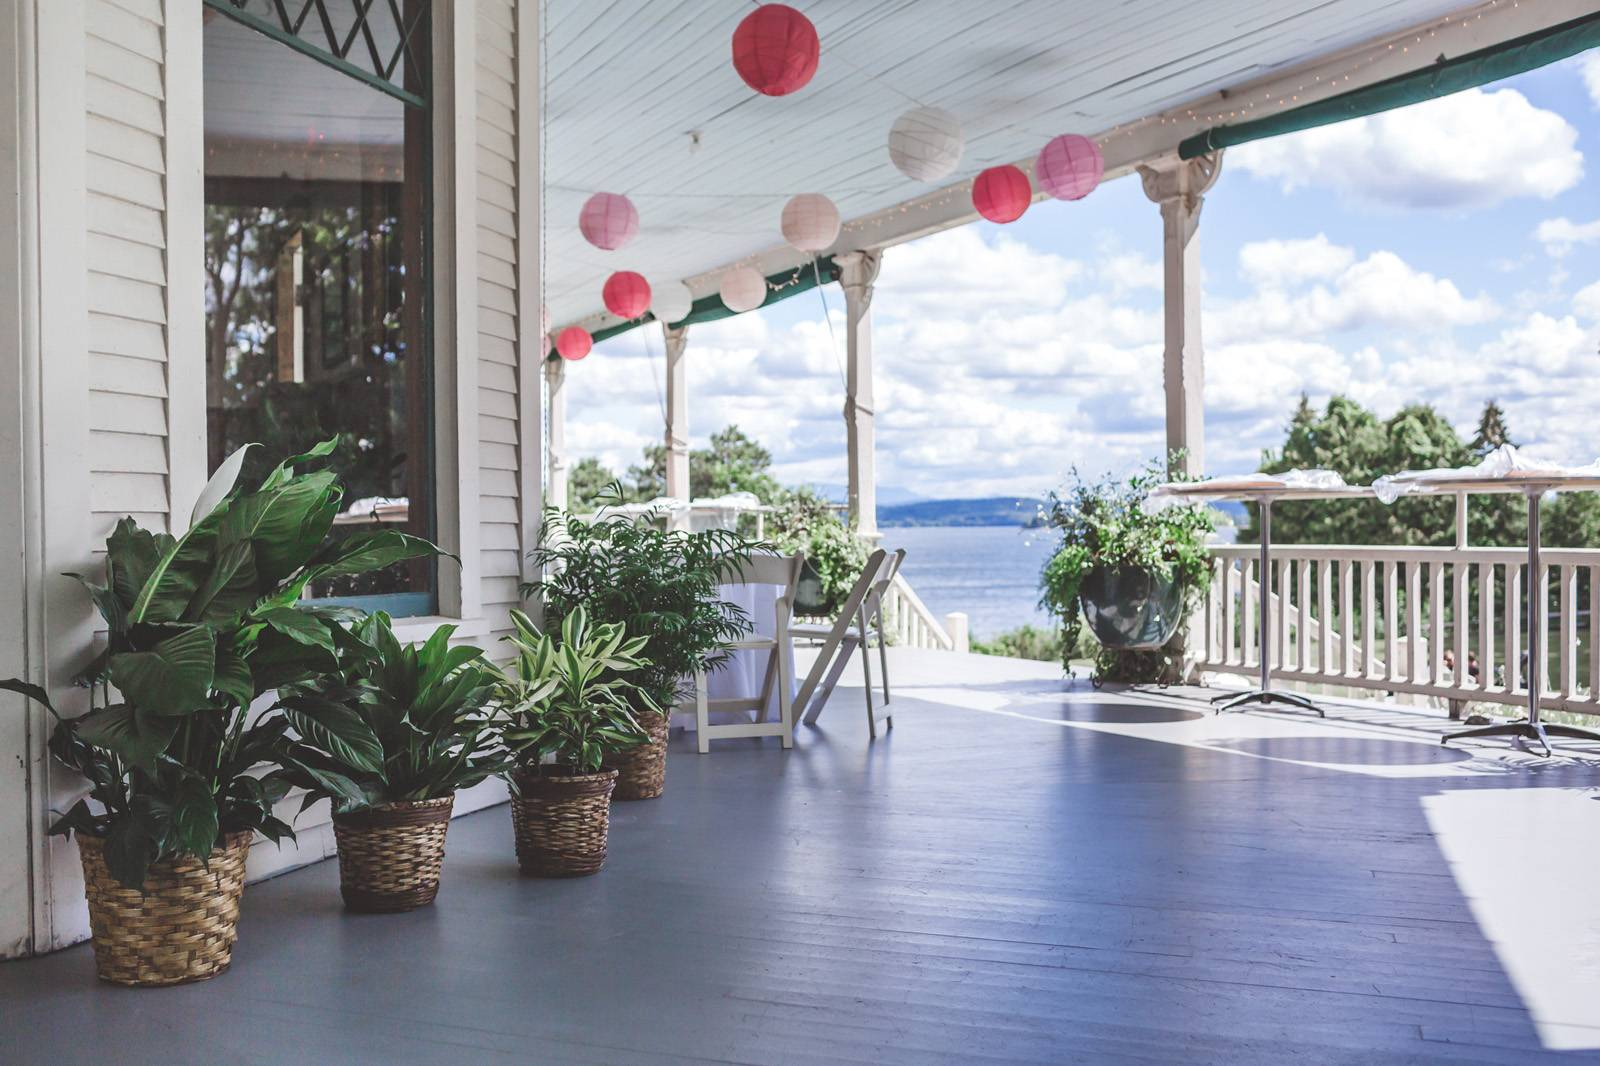 Tropical plants and hanging paper lanterns decorate the porch at the Grand Isle Lake House